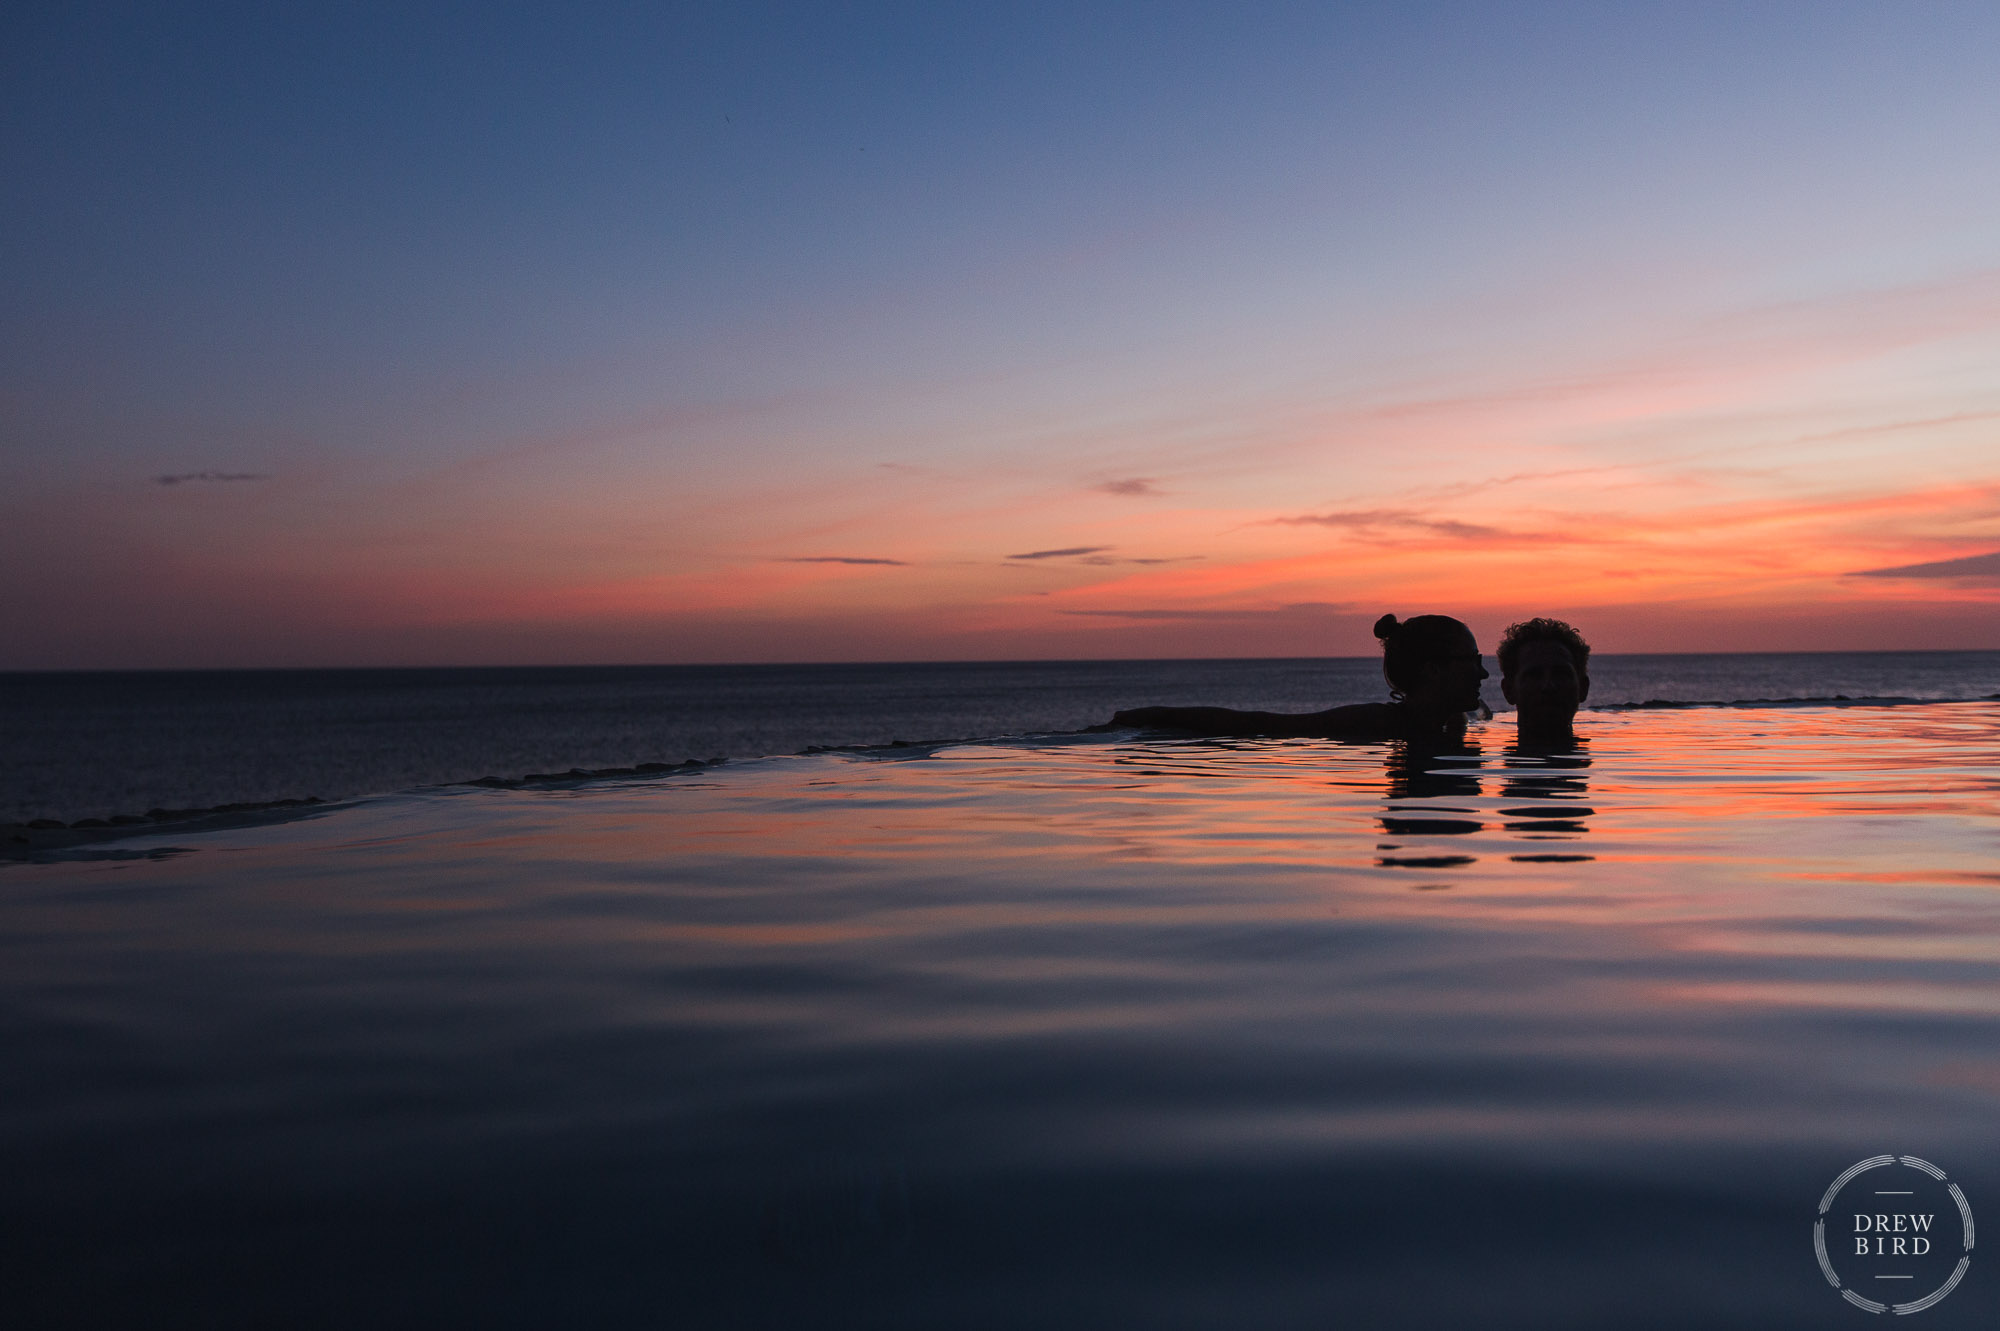 Bride and groom in an infinity pool at sunset with silhouette. Rancho Santana Nicaragua destination wedding photographer Drew Bird.